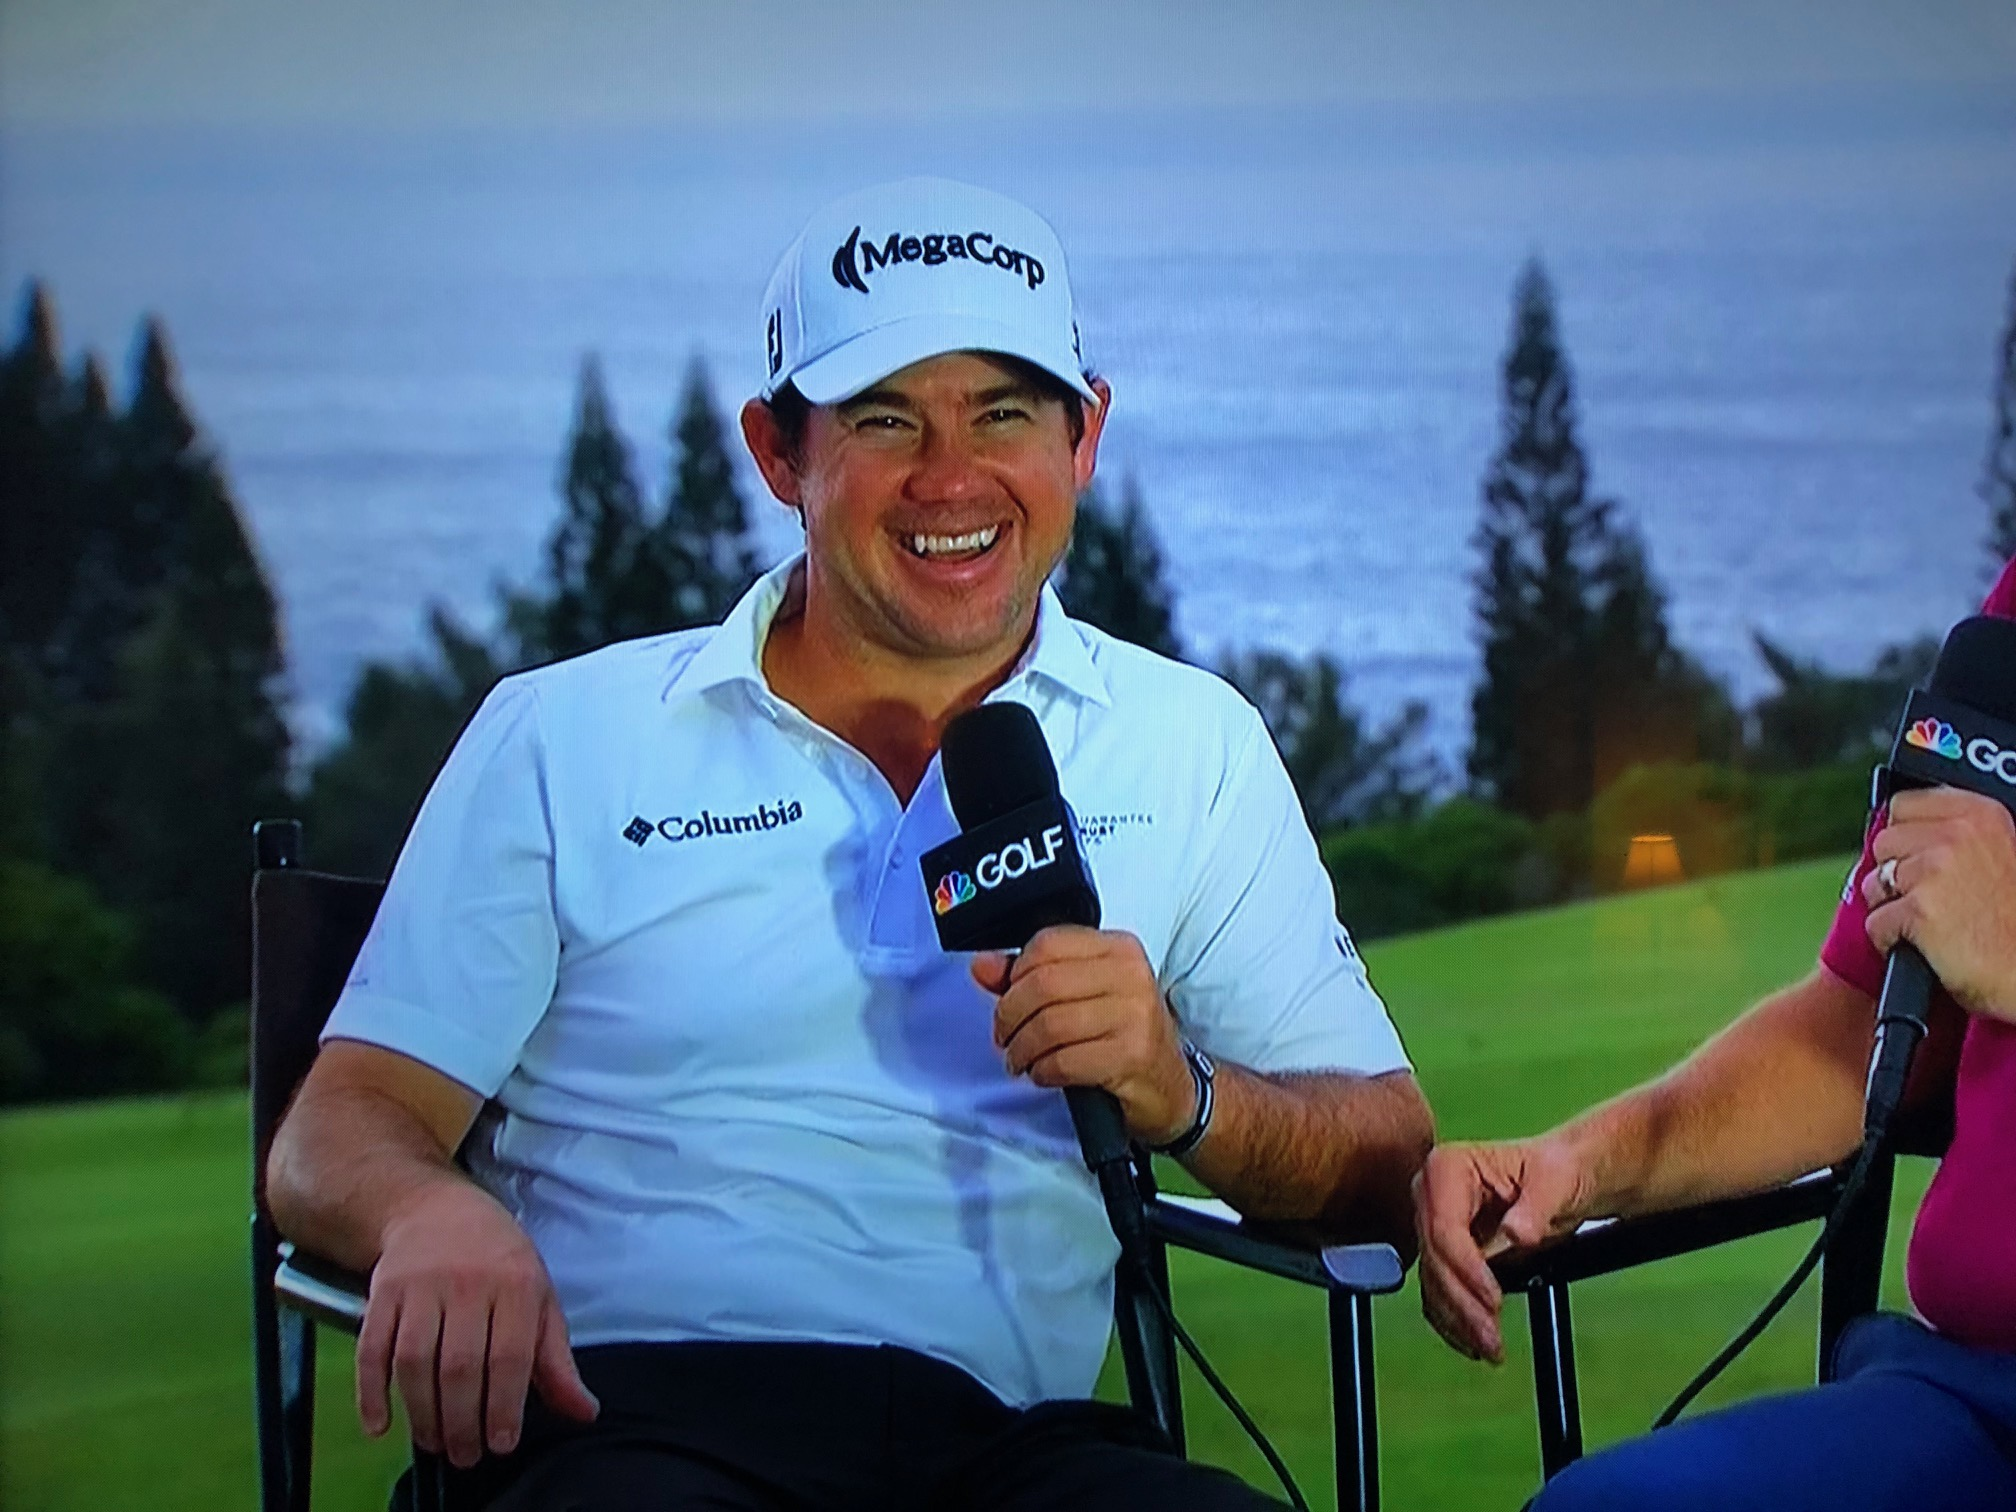 Professional golfer Brian Harman during an interview. He is sitting in a chair in front of a background that depicts a golf course, wearing a MegaCorp hat and holding a microphone with the NBC Golf Channel logo.